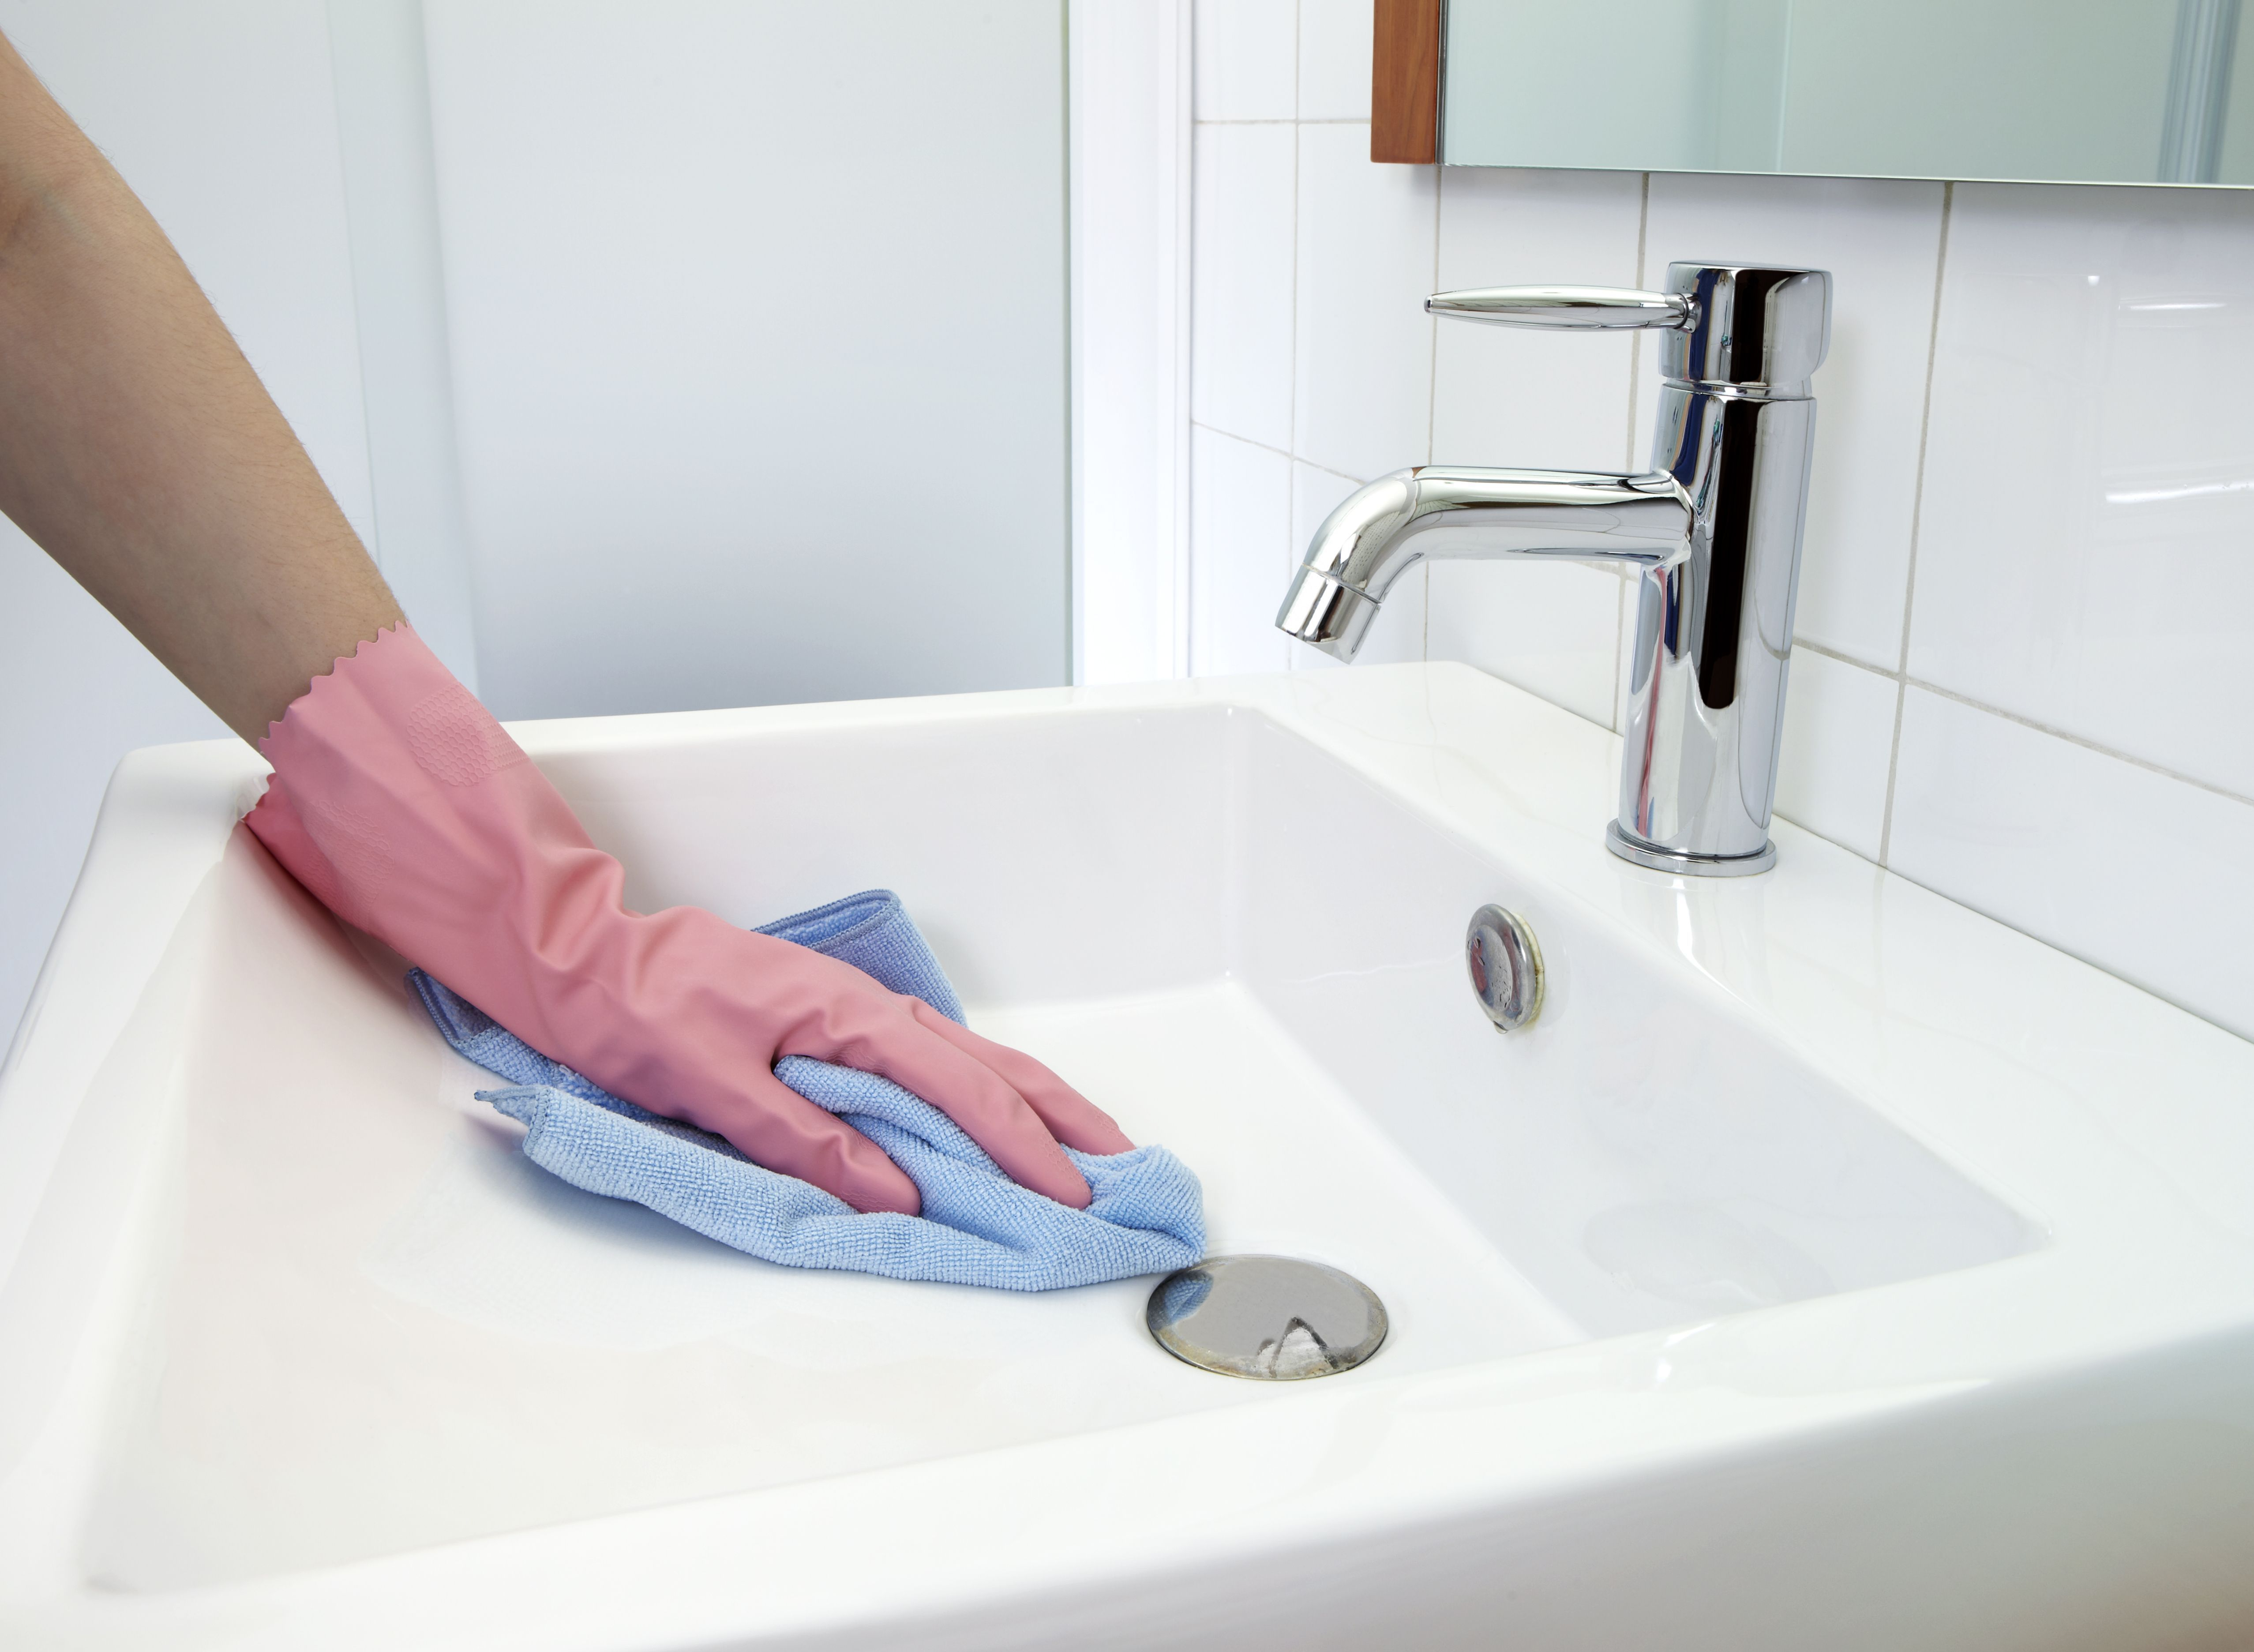 Use These Tips to Remove Rust Stains From Toilets, Tubs ...